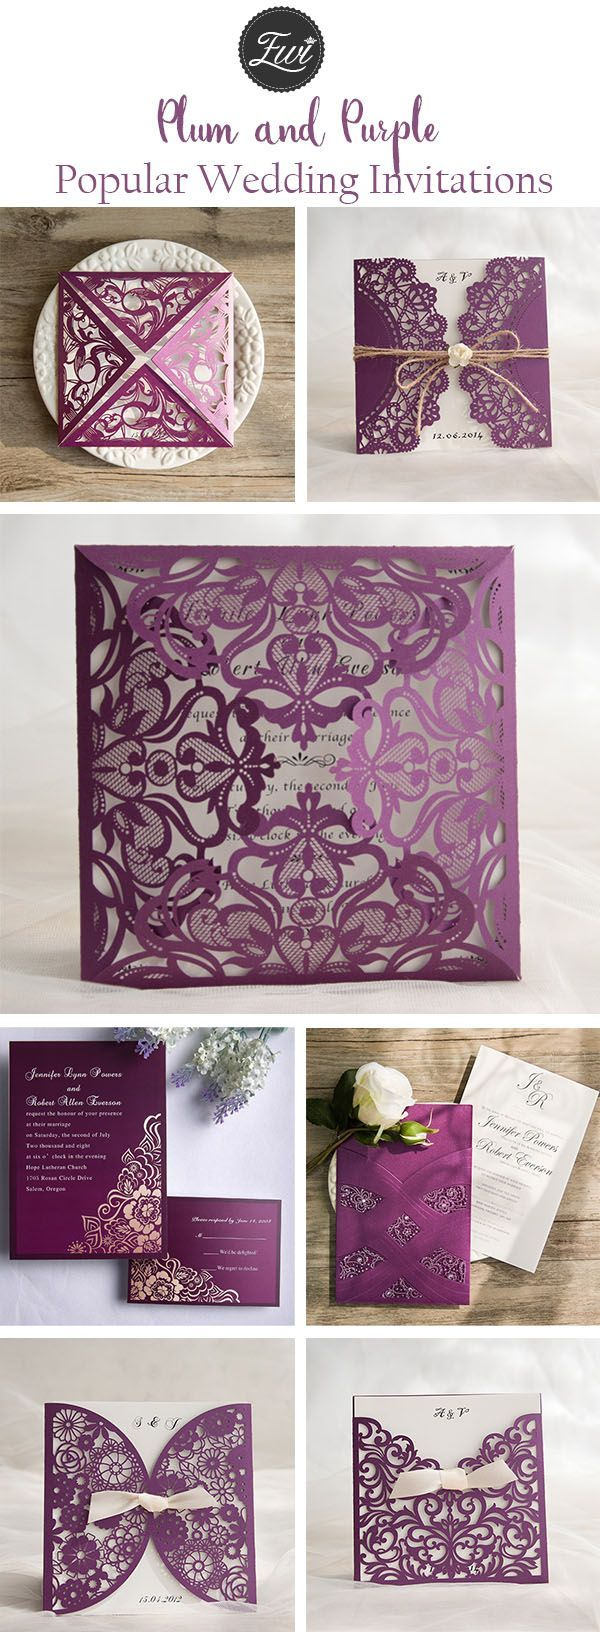 176 Best Stylish Wedding Ideas Images On Pinterest Invitation